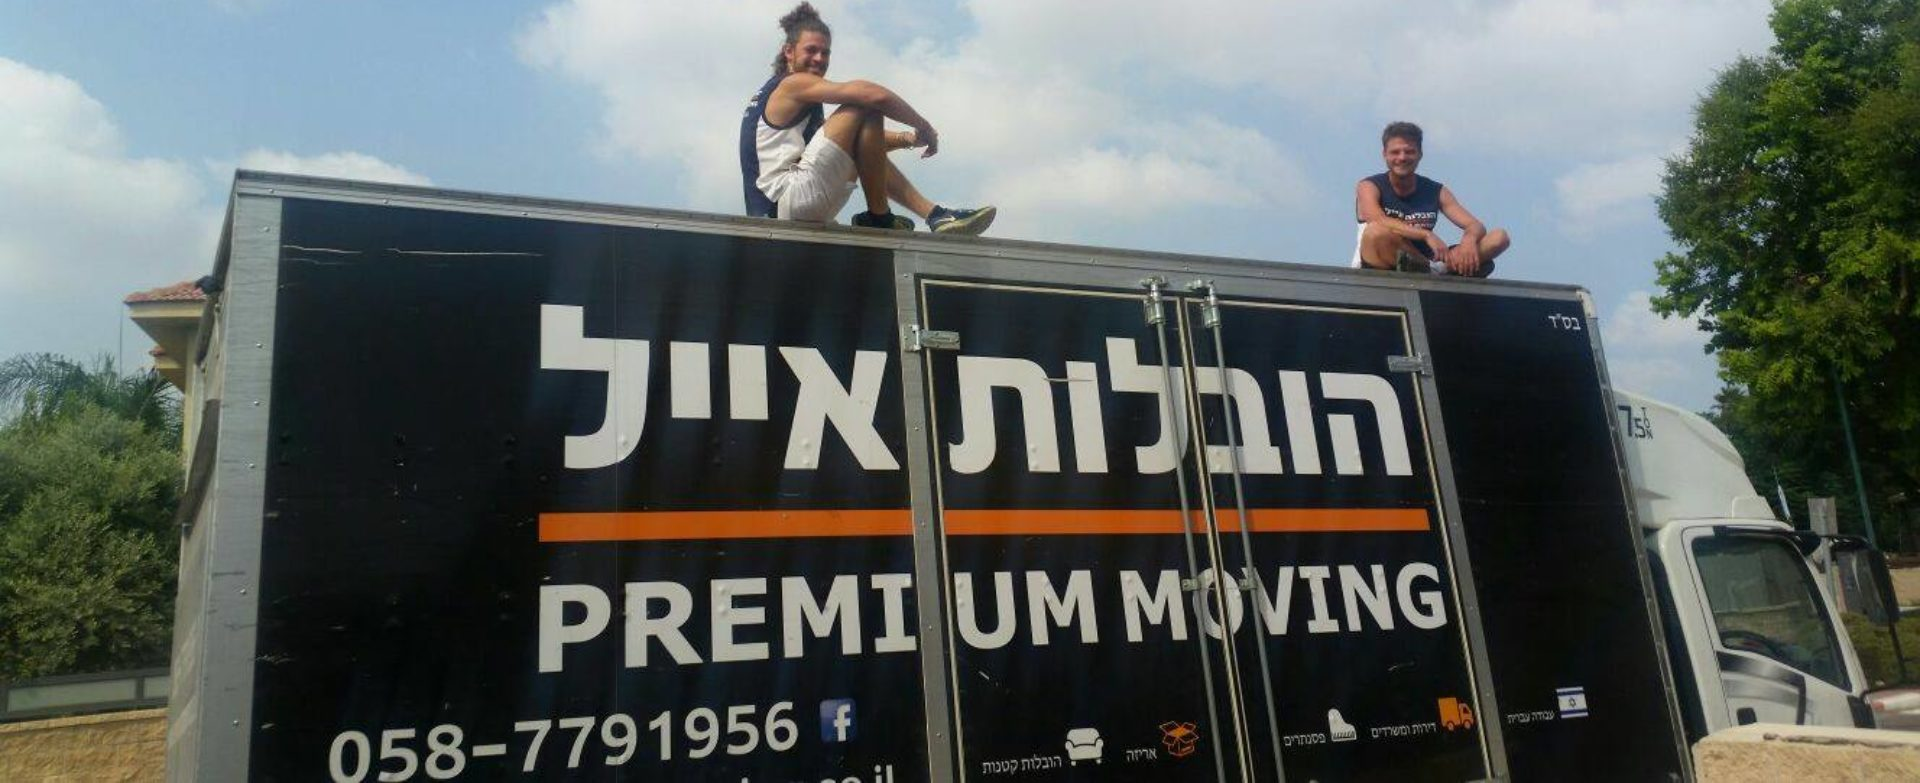 Premium Moving   The Best Moving Company In Jerusalem